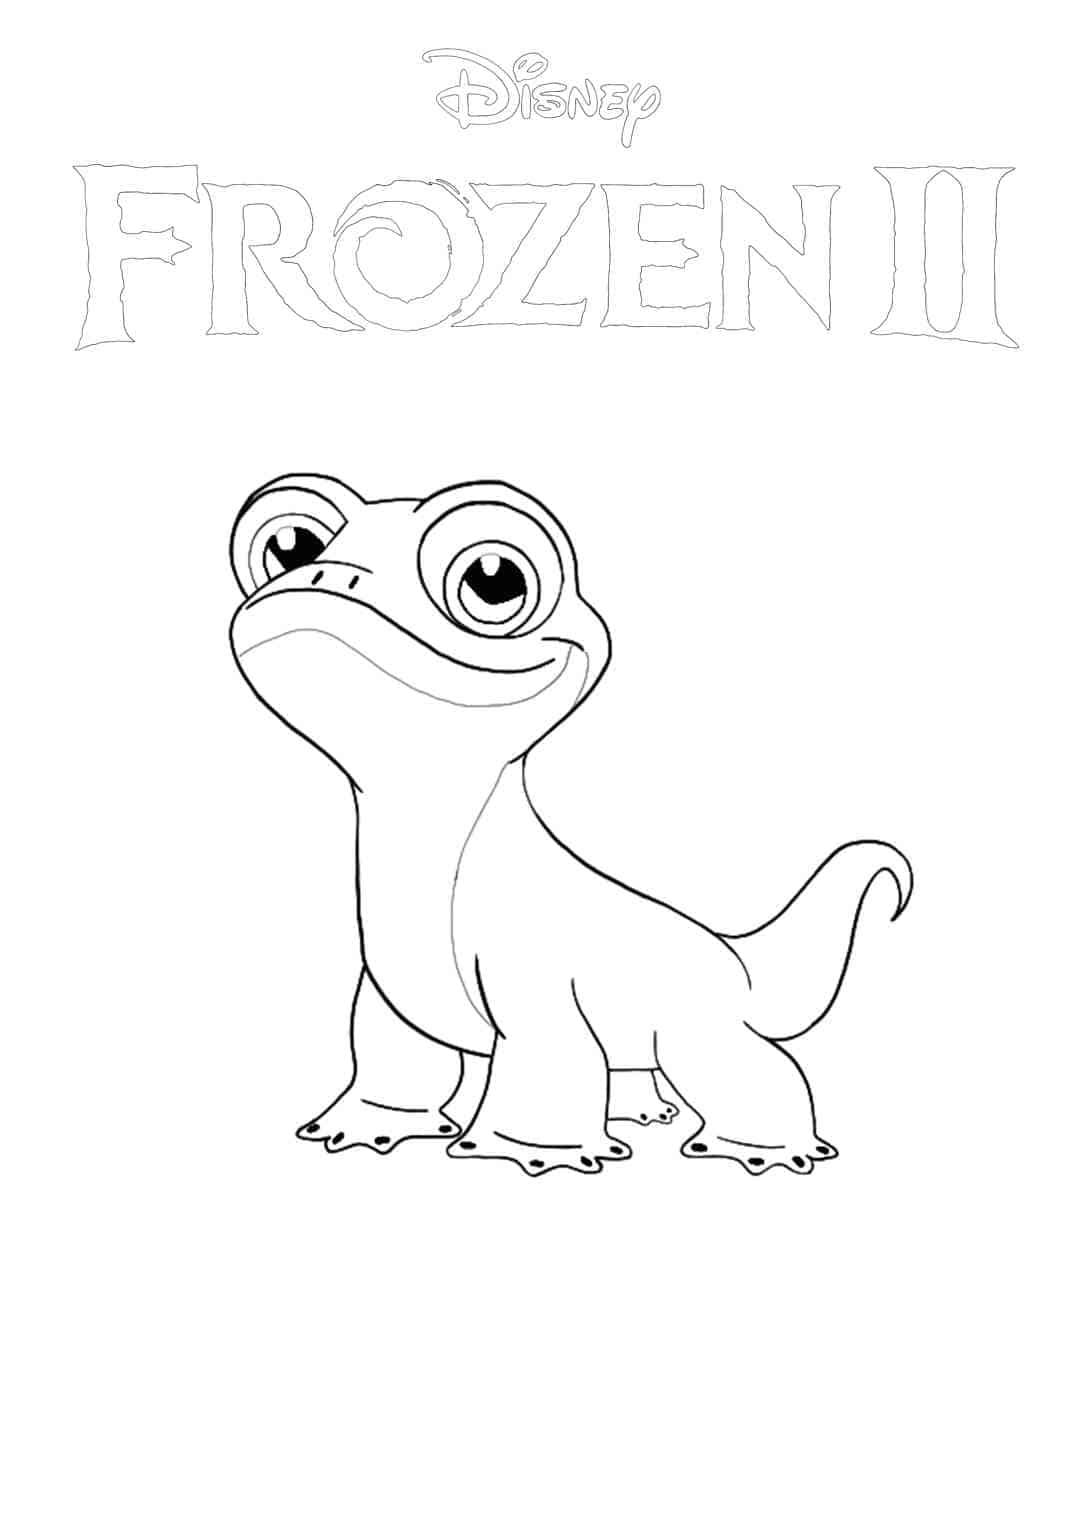 Frozen 2 Bruni Coloring Page Free Frozen Ii Coloring Pictures Coloring1 Com Disney Coloring Sheets Disney Coloring Pages Frozen Coloring Pages